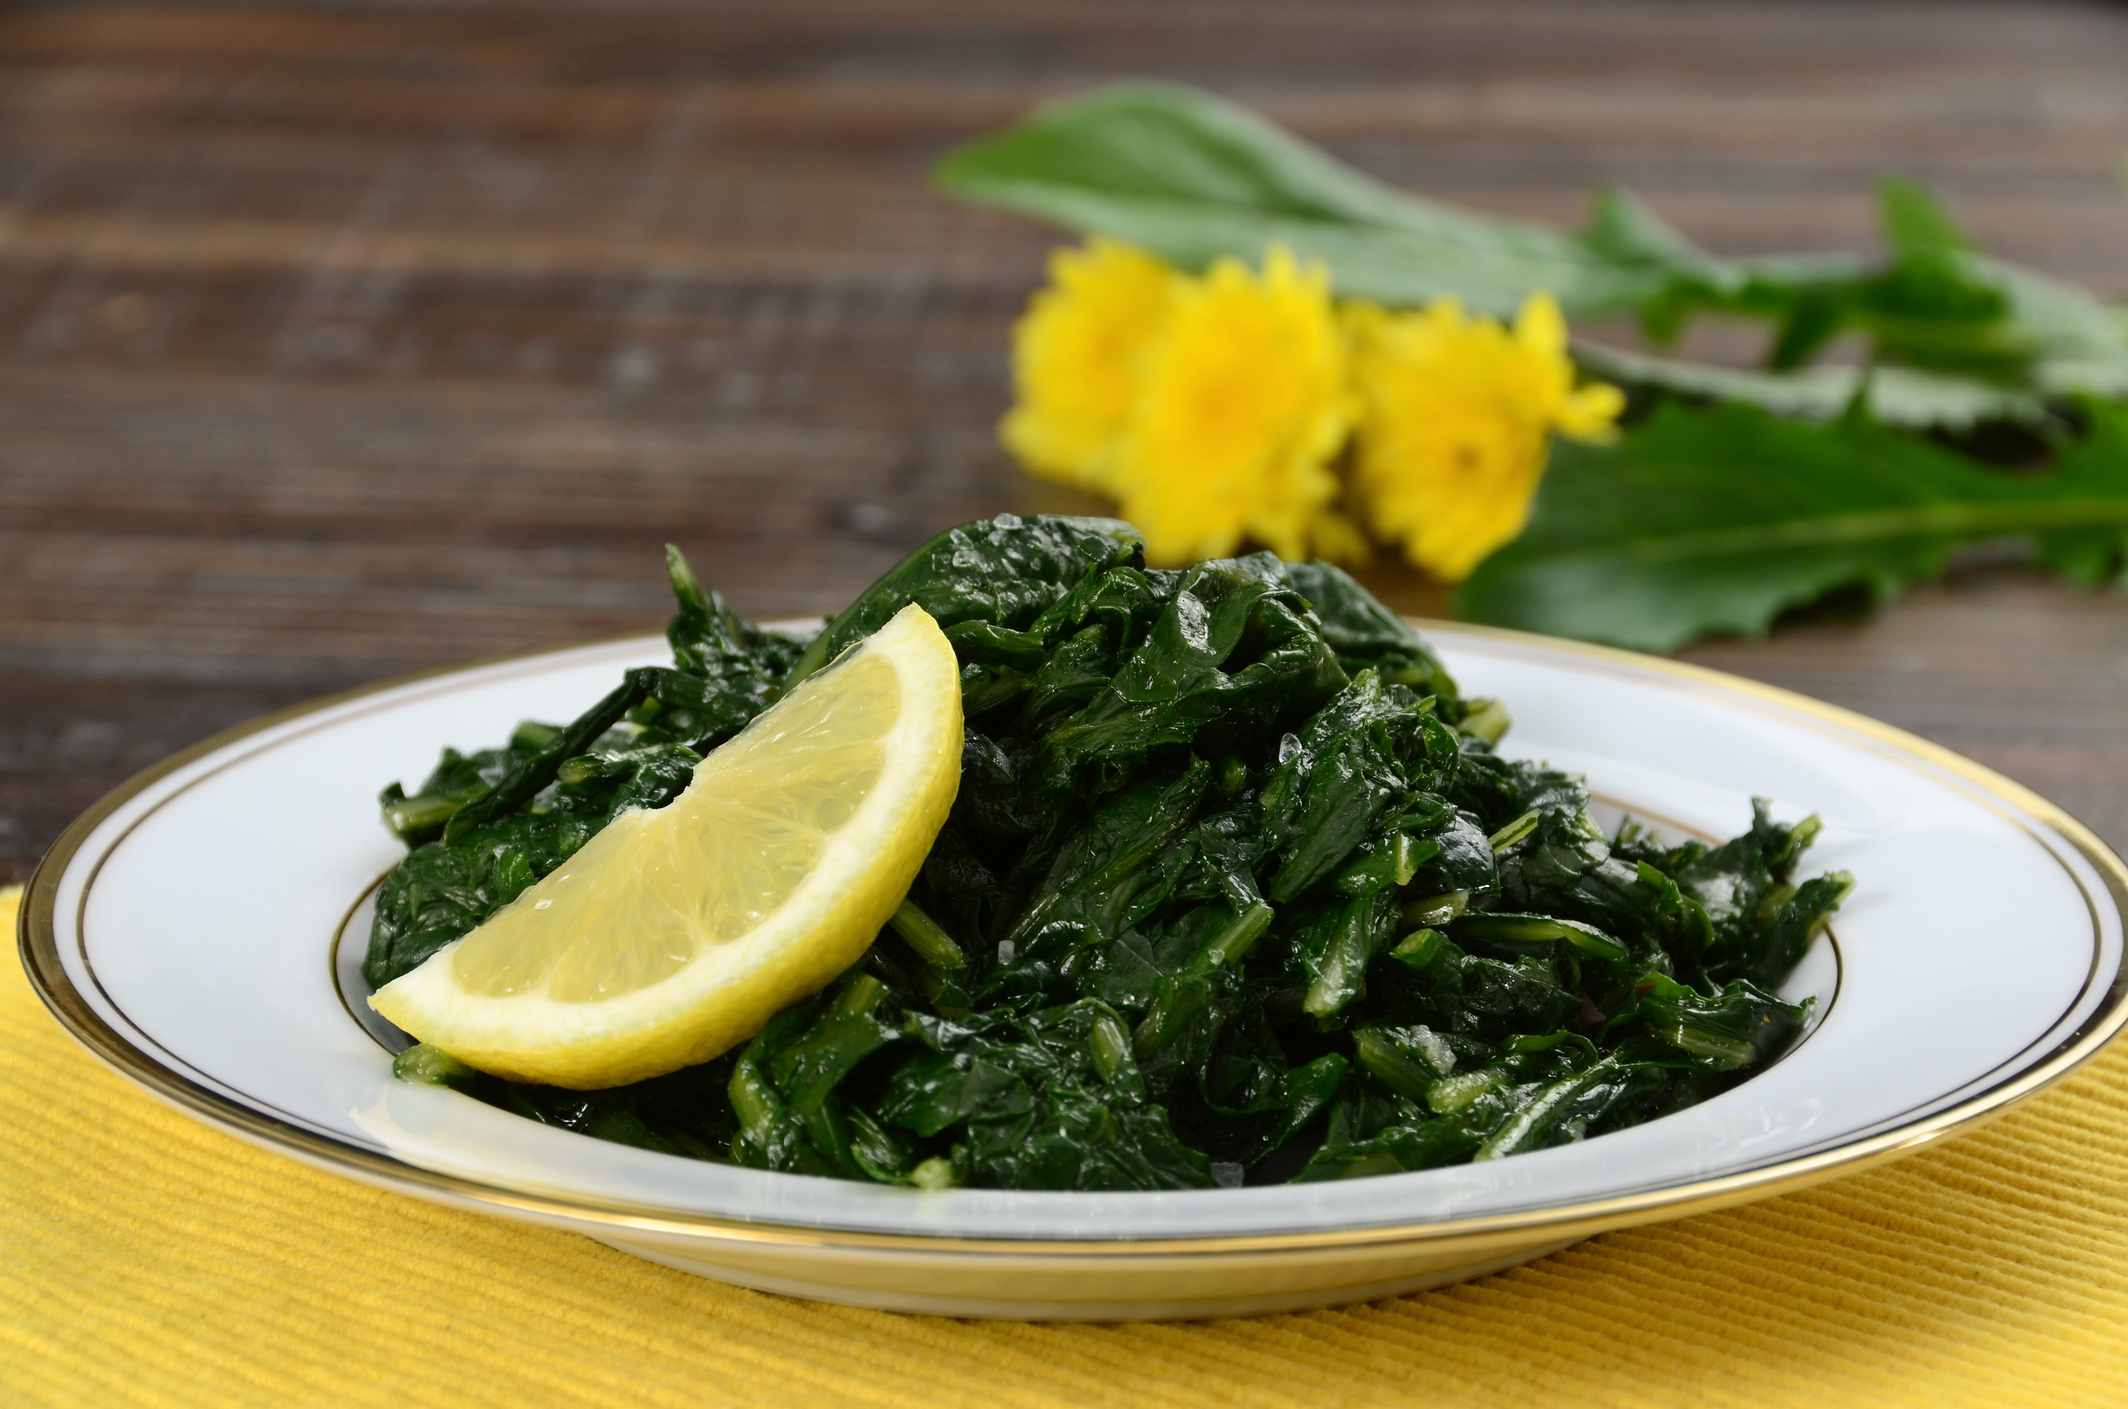 Dandelion Sauteed with Garlic and Olive Oil